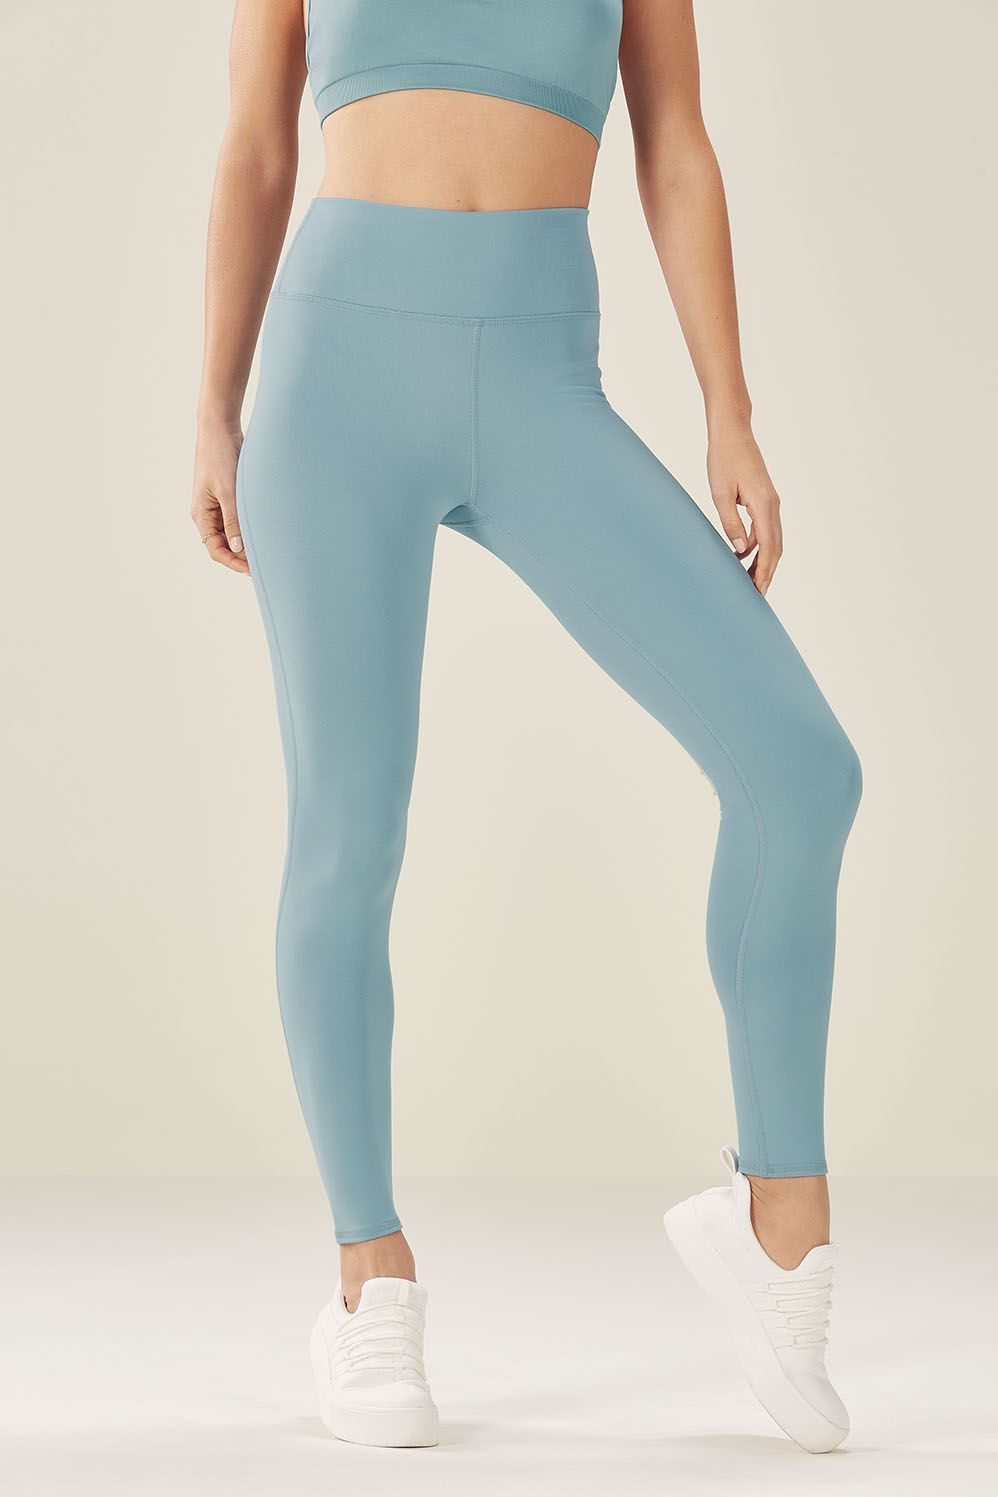 04f4ec53cd5aa5 High-Waisted Solid PowerHold® 7/8 in 2019 | workout/yoga clothes ...